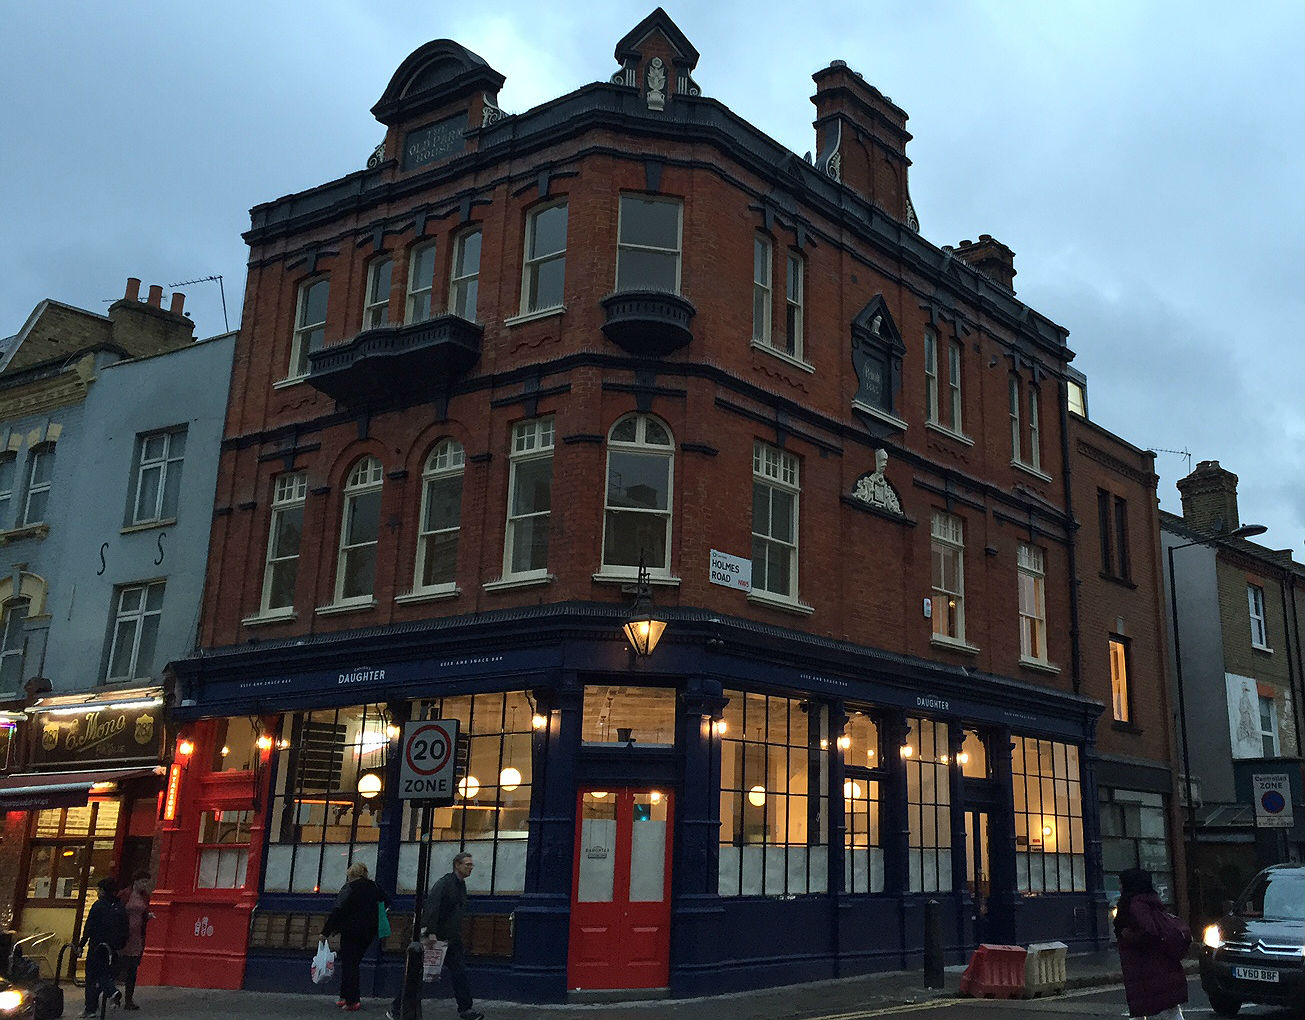 As night falls: the handsome scrubbed-up pub. Photo: SE